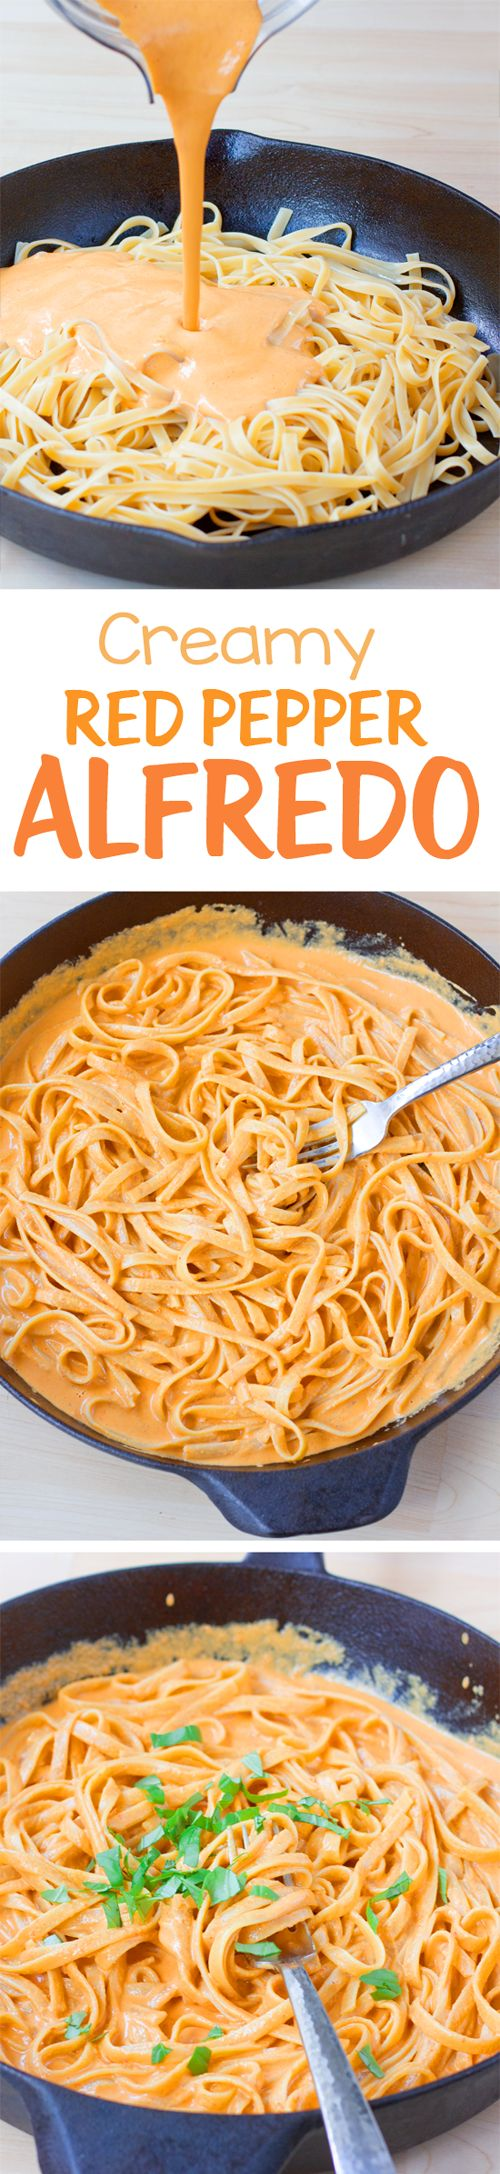 This has become one of our favorite dinners, and the creamy sauce is delicious. The vegan pasta recipe for red pepper alfredo is highly recommended! #pastafoodrecipes